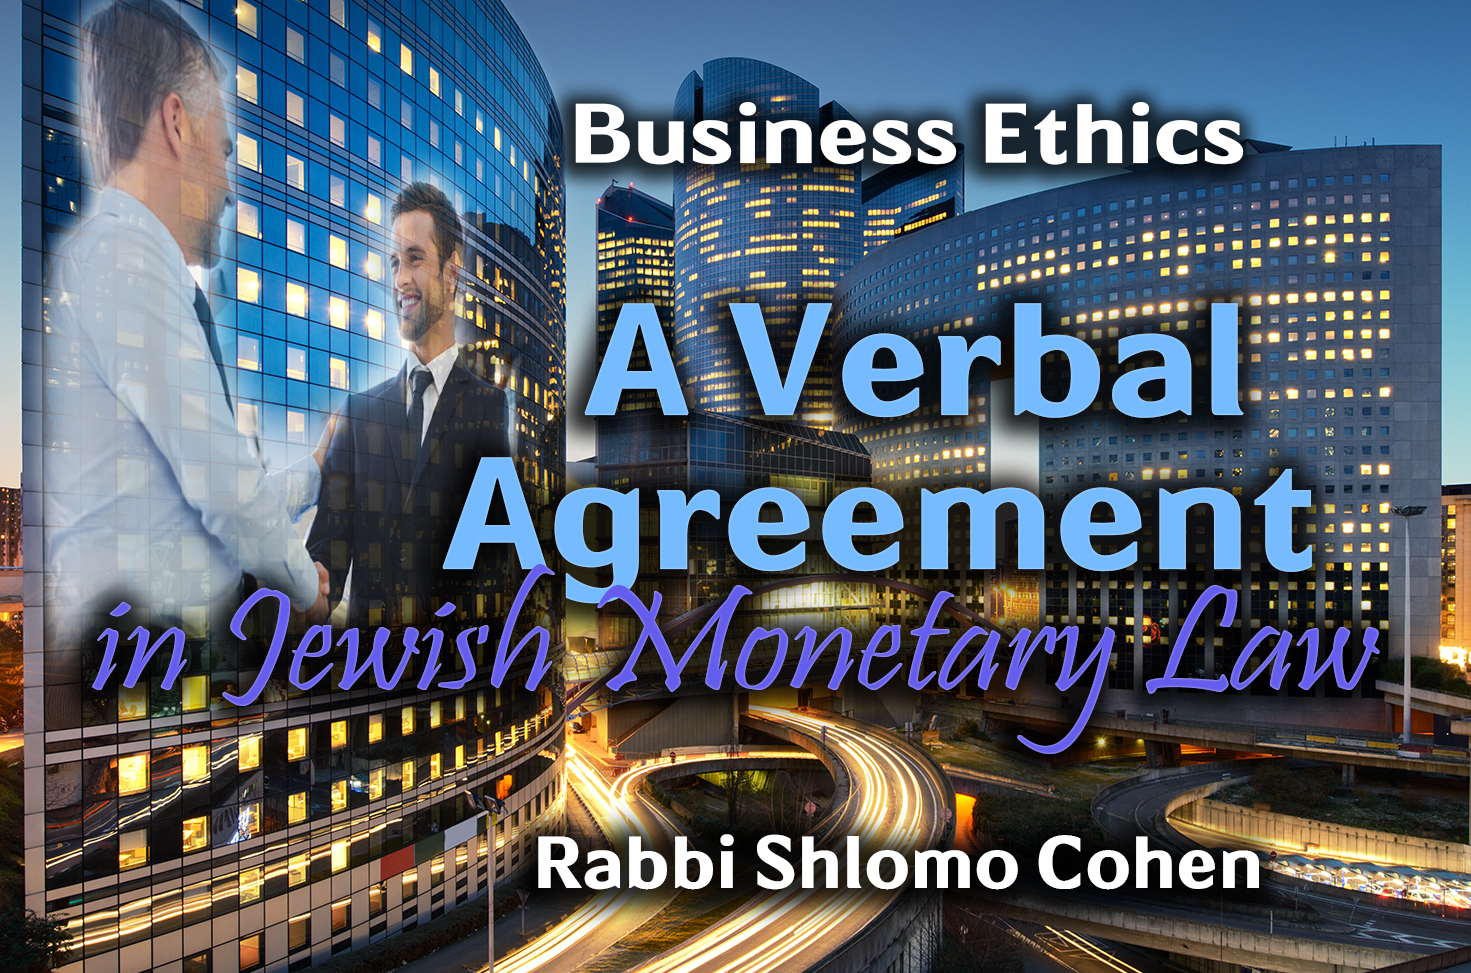 Photo of A Verbal Agreement in Jewish Monetary Law